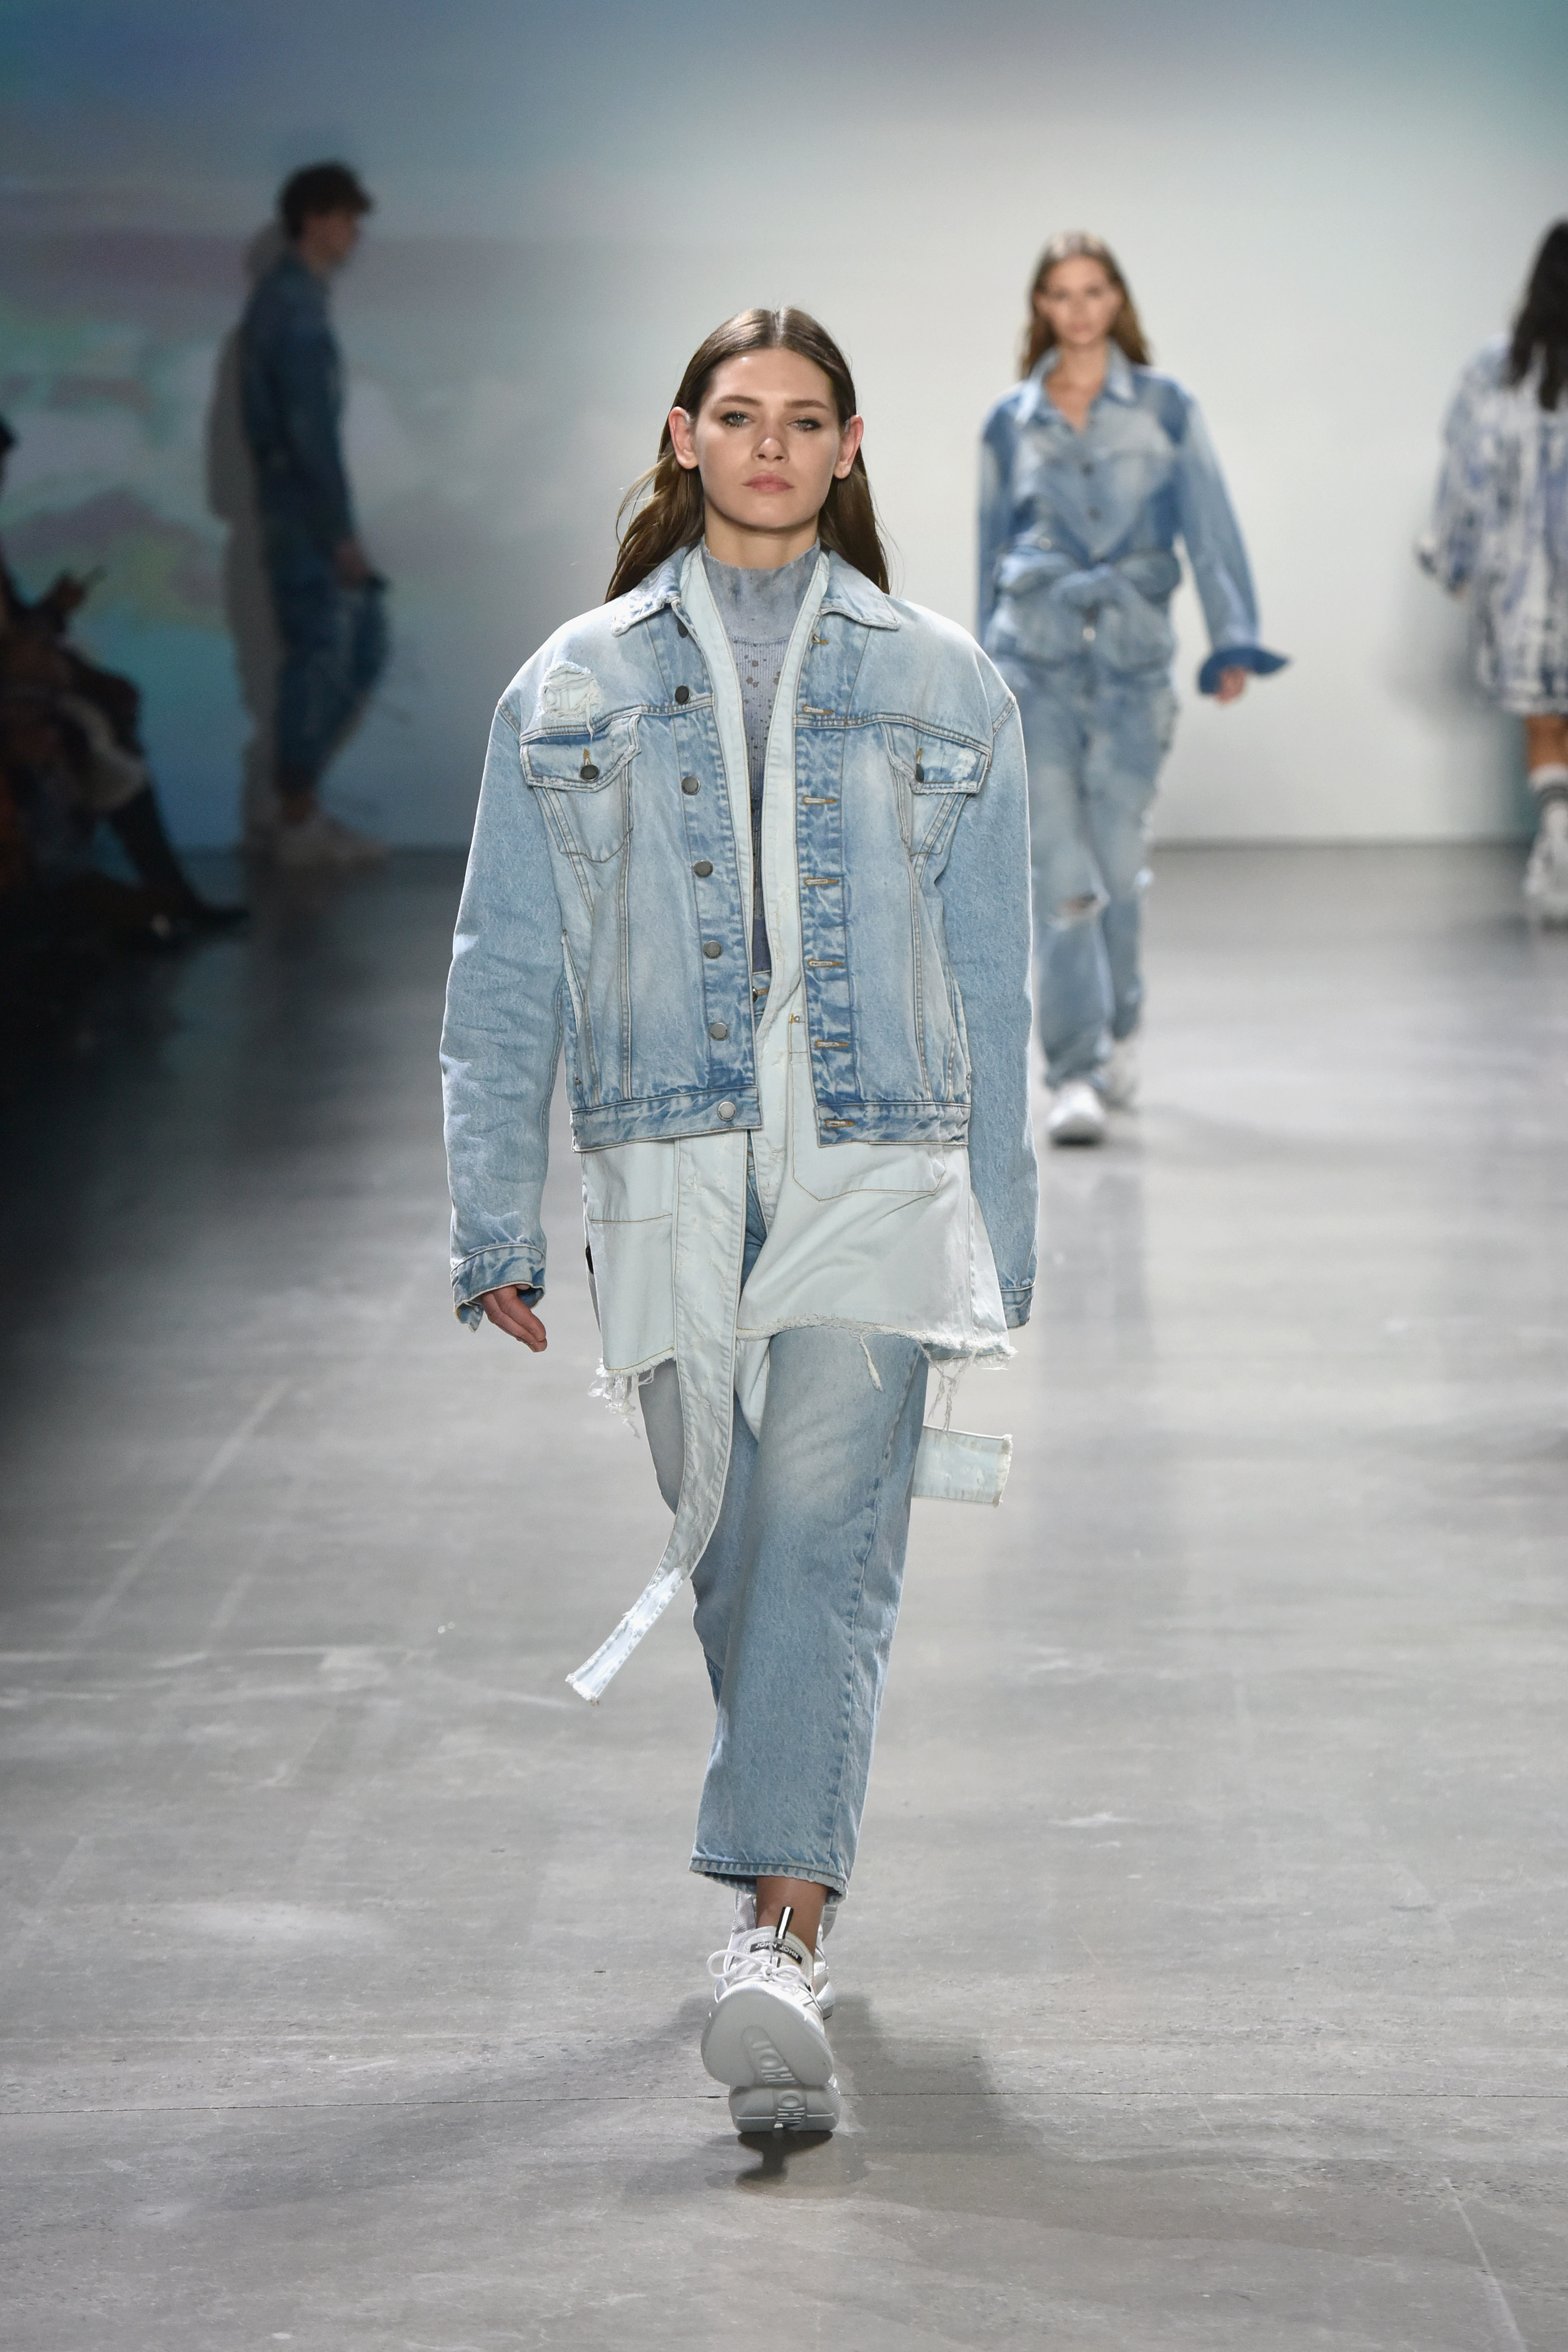 Model jeans image Rivets On Jeans Could Be A Thing Of The Past Cnn Style